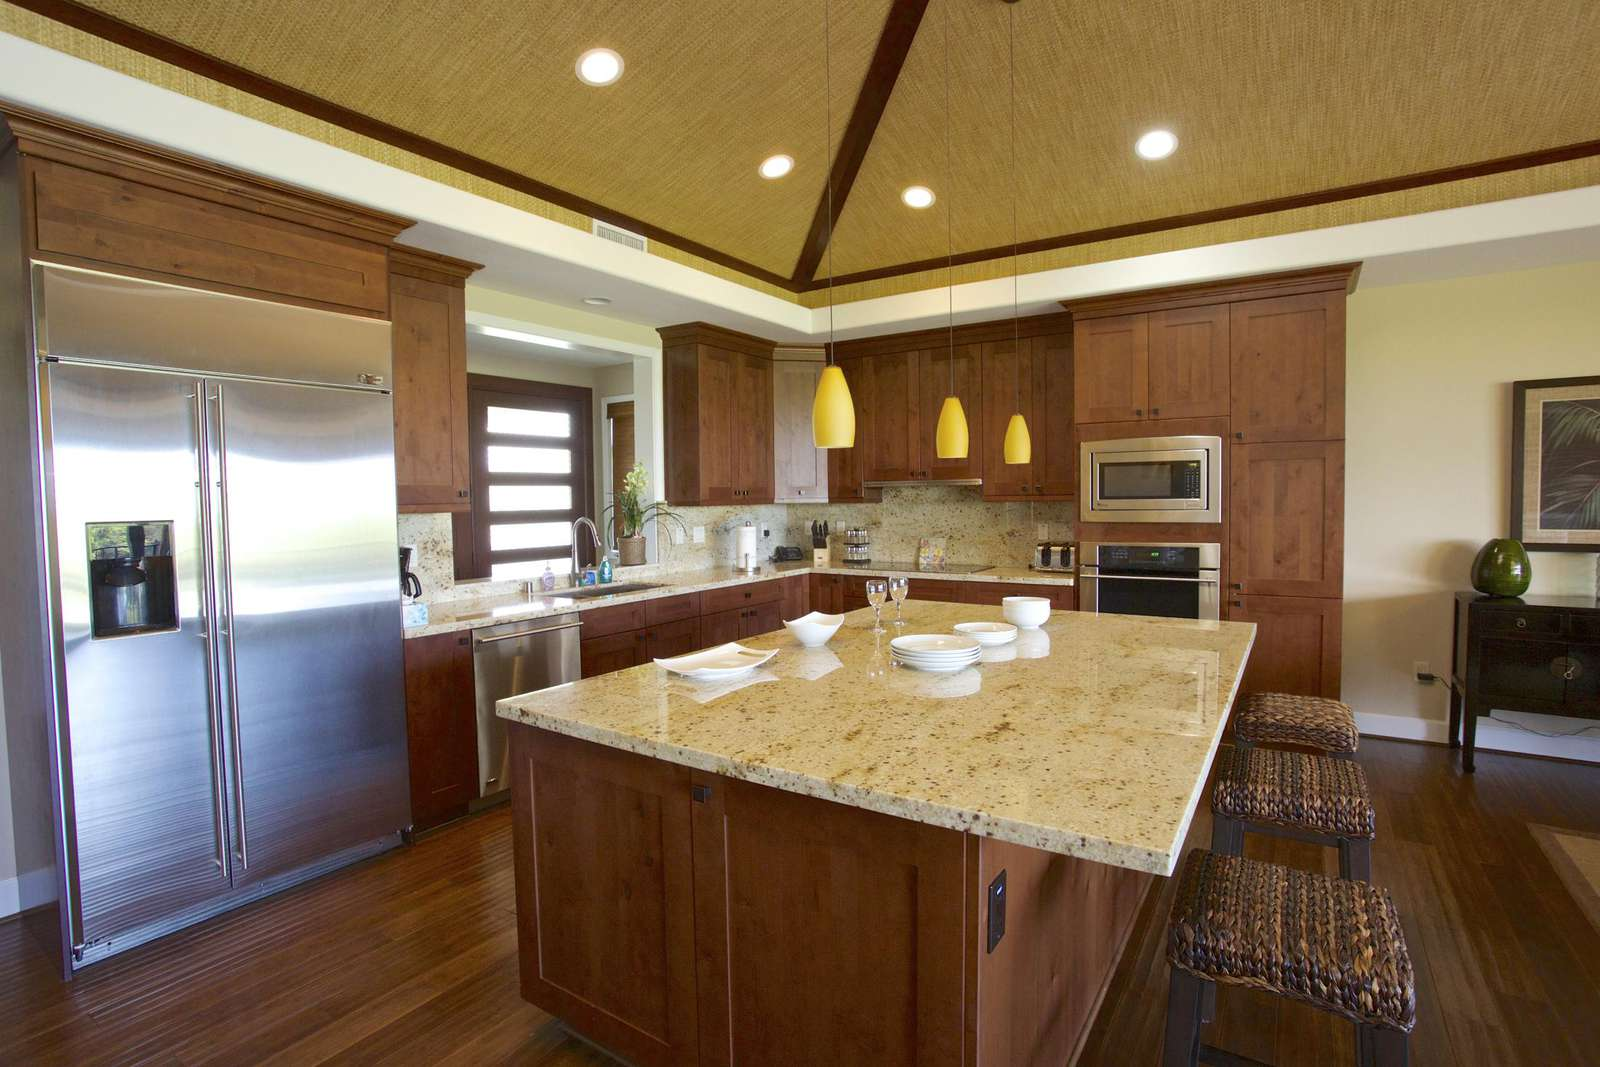 Gourmet kitchen complete with everything you need to cook your meals